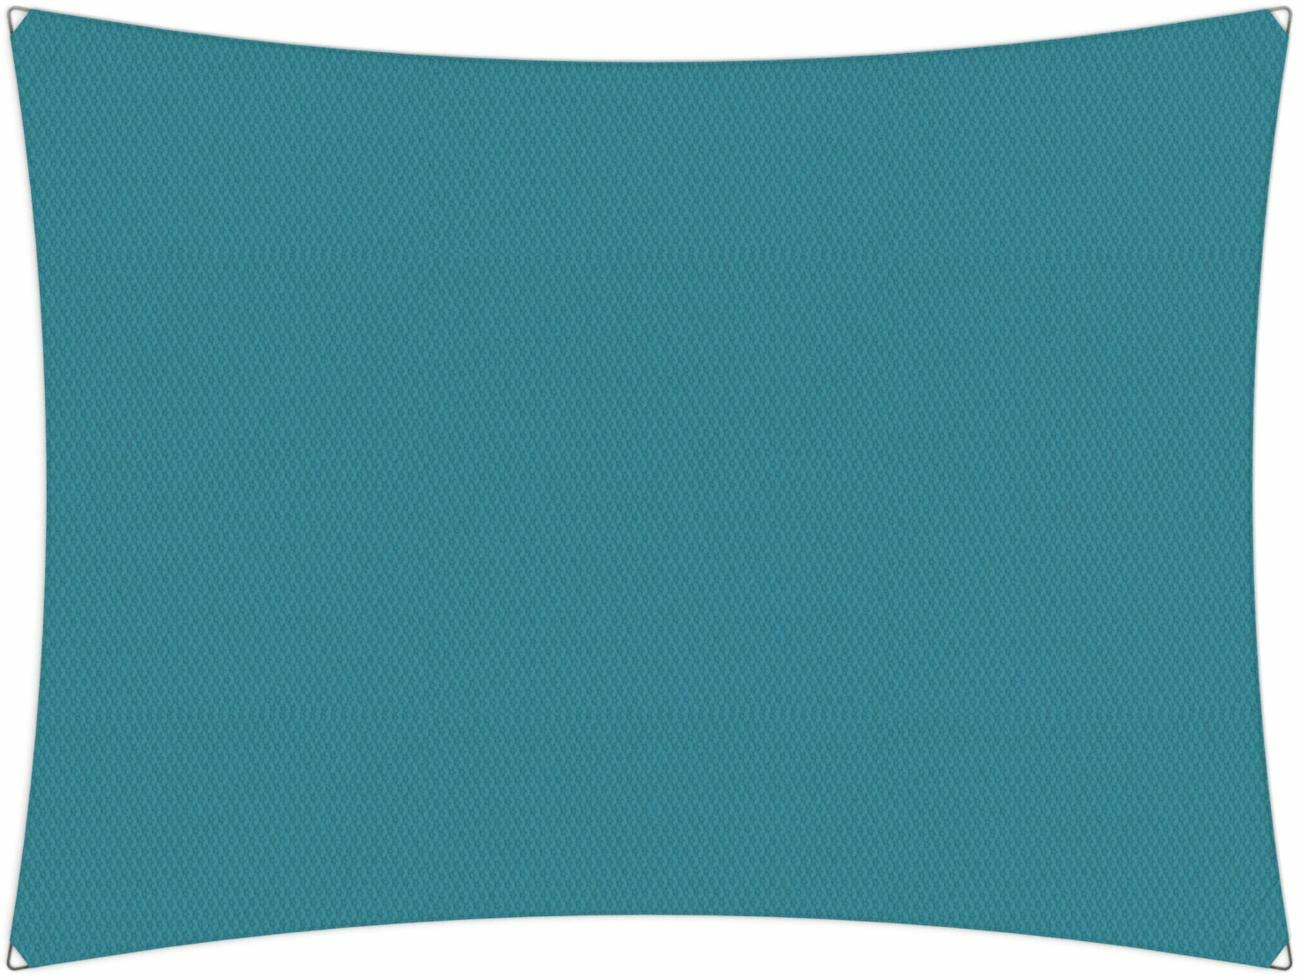 Ingenua shade sail Rectangle 5 x 3 m, for outdoor use. Colour of the fabric shade sail Adriatic.